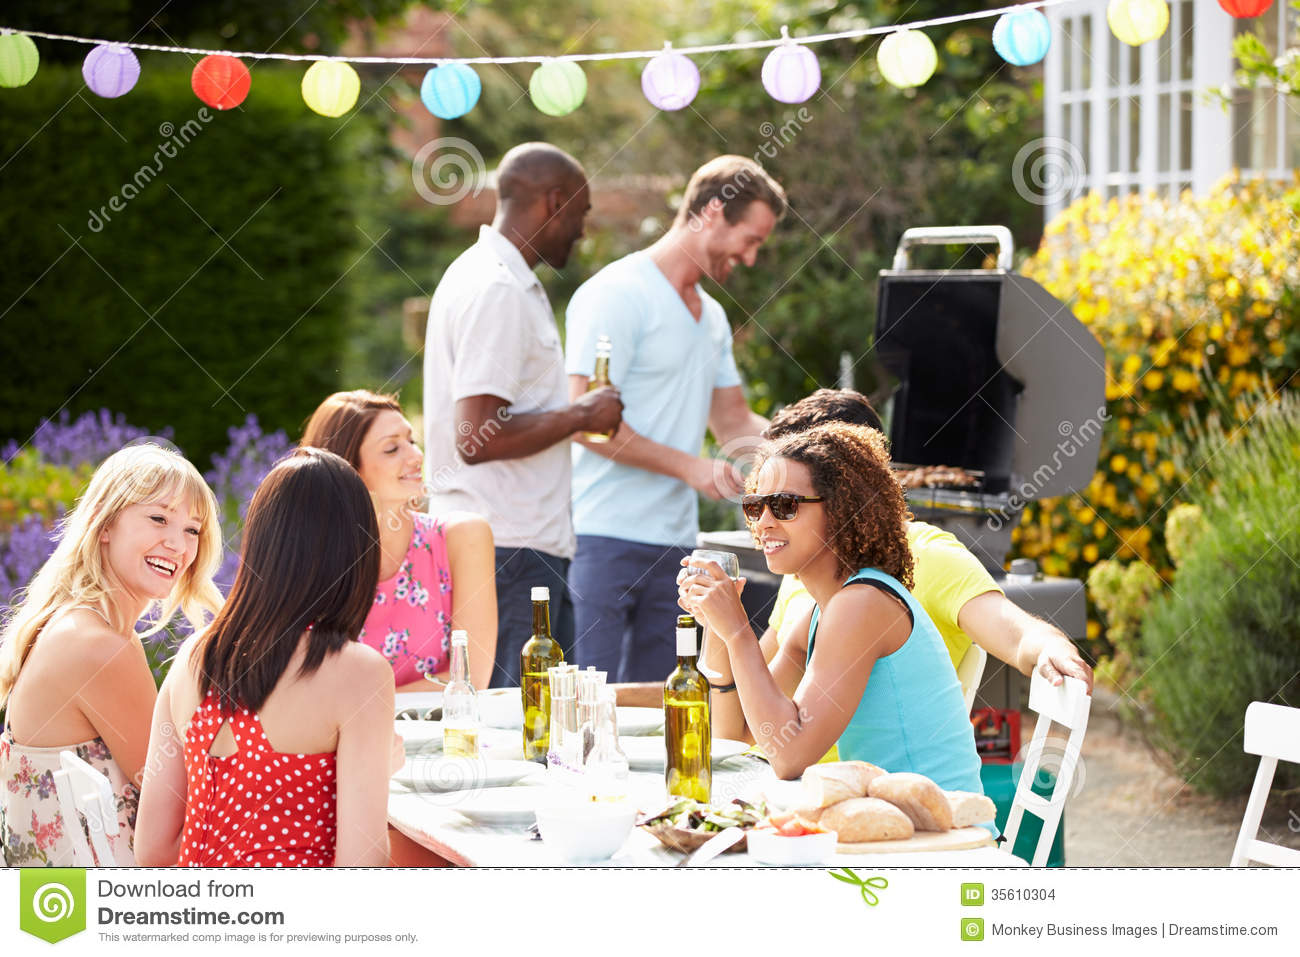 Gardening Group: Group Of Friends Having Outdoor Barbeque At Home Stock